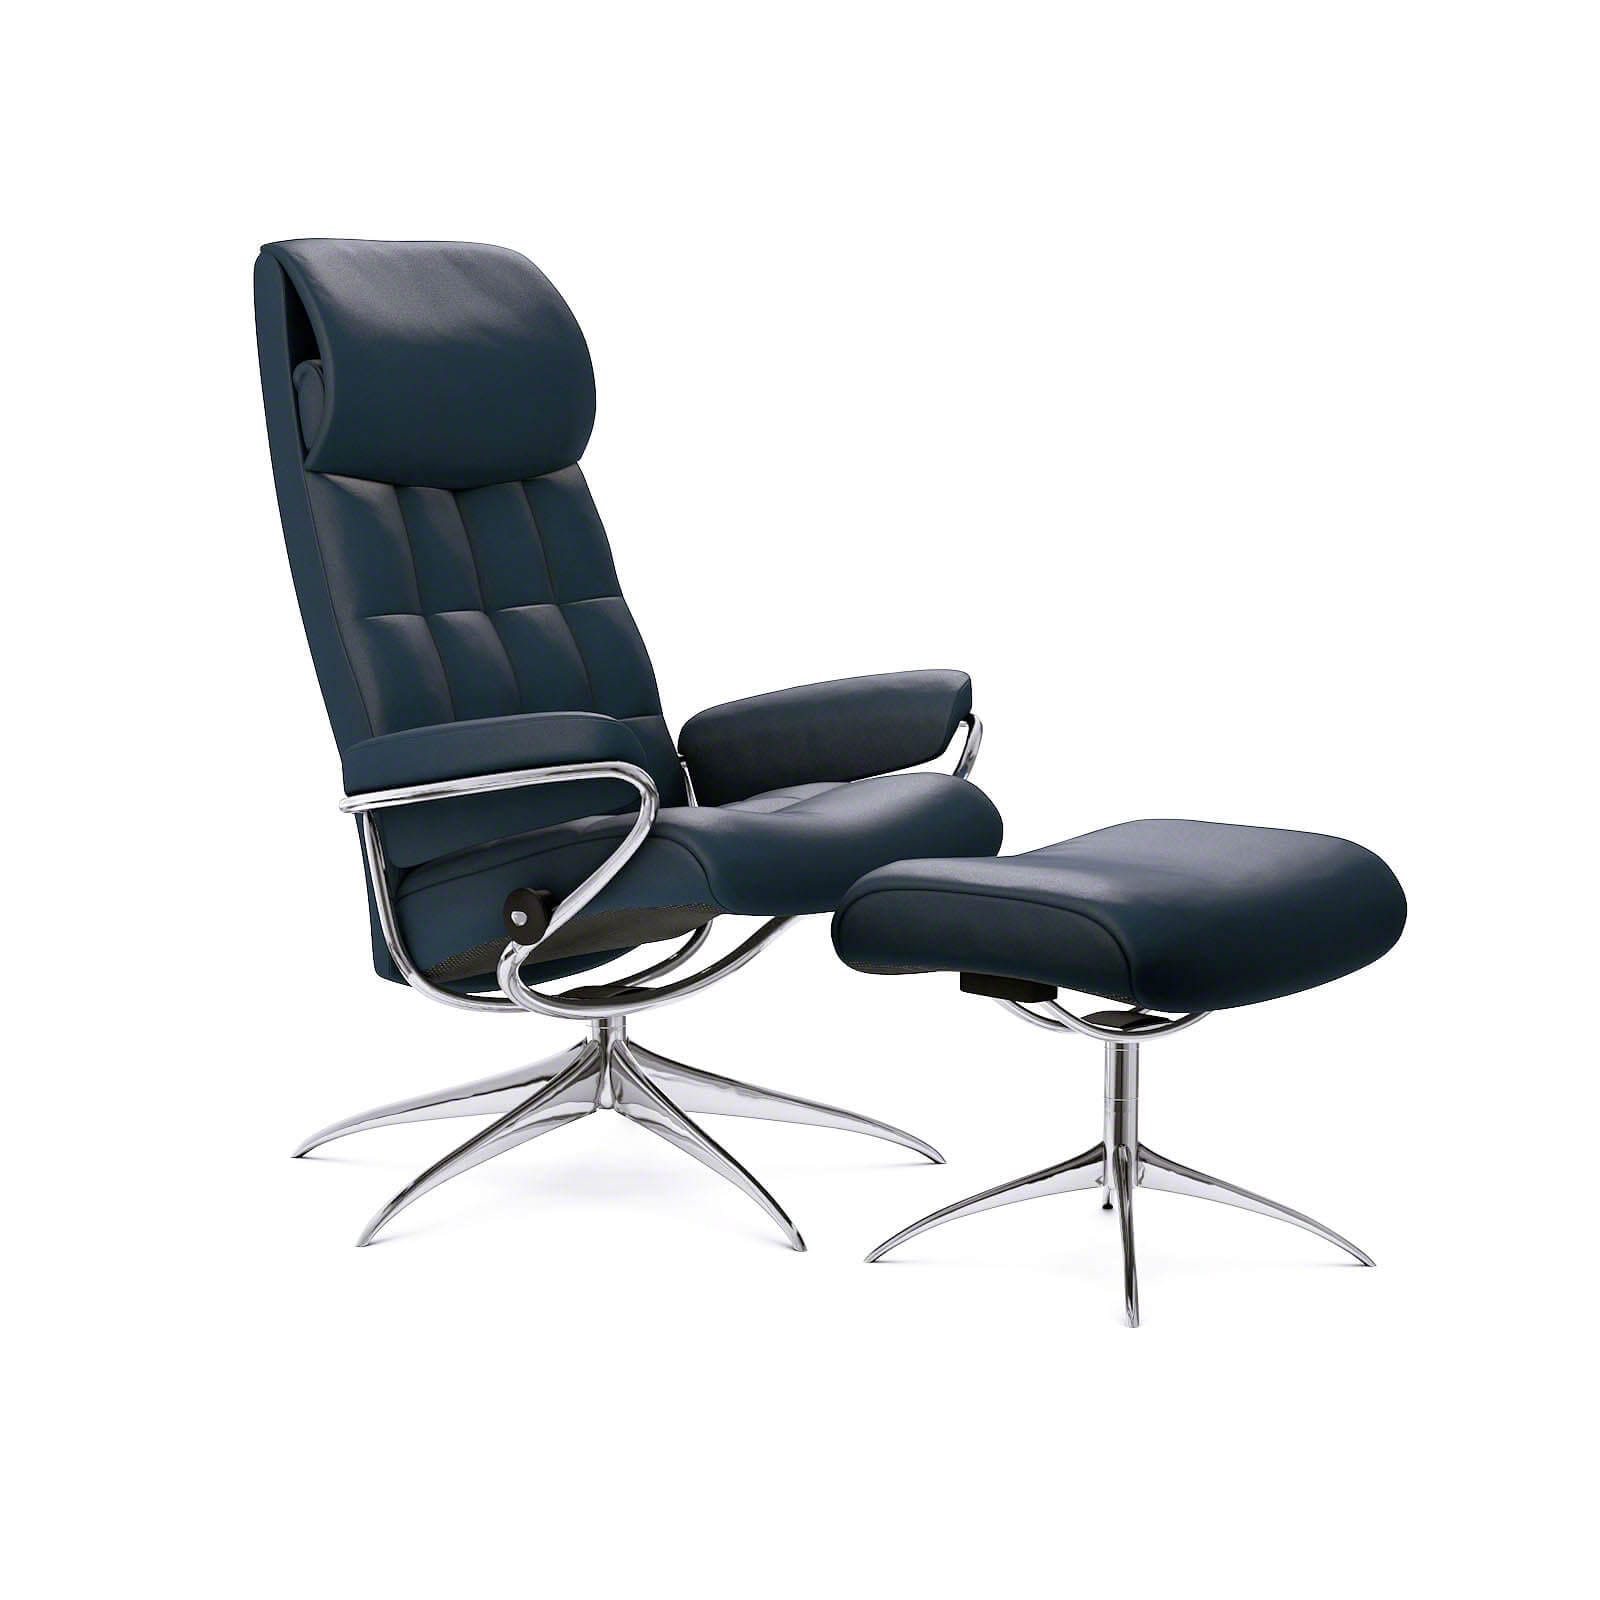 Oxford Sessel Stressless London Sessel Mit Hoher Lehne Paloma Oxford Blue